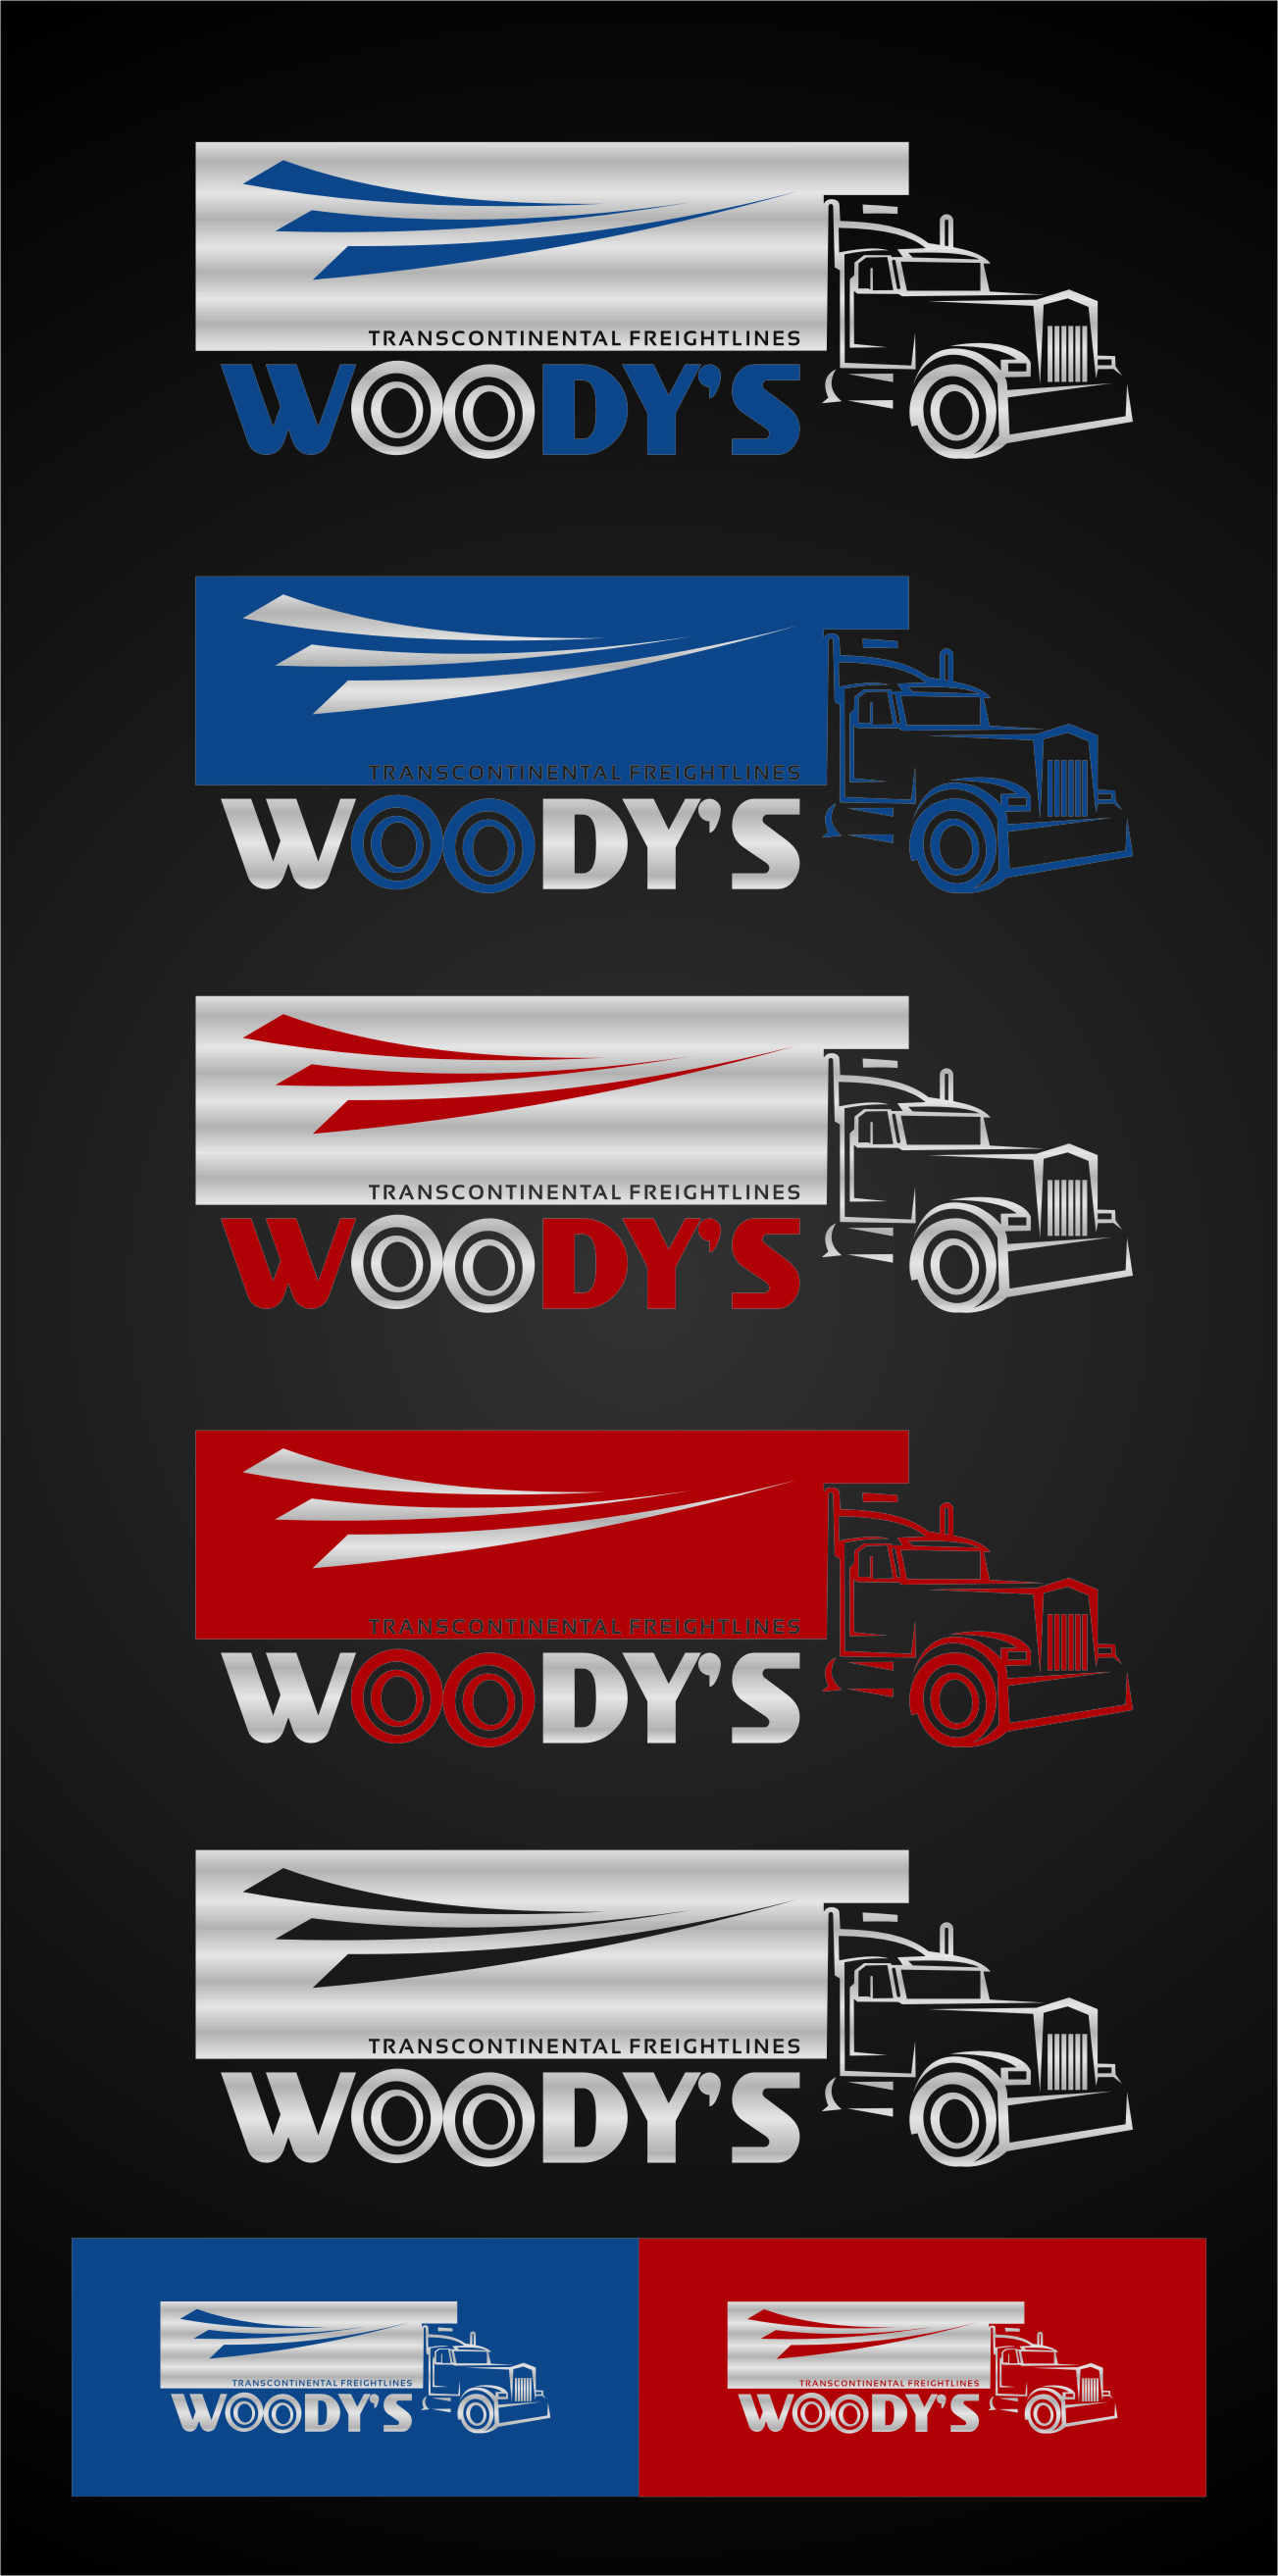 Logo Design by RoSyid Rono-Rene On Java - Entry No. 75 in the Logo Design Contest Creative Logo Design for Woody's Transcontinental Freightlines.